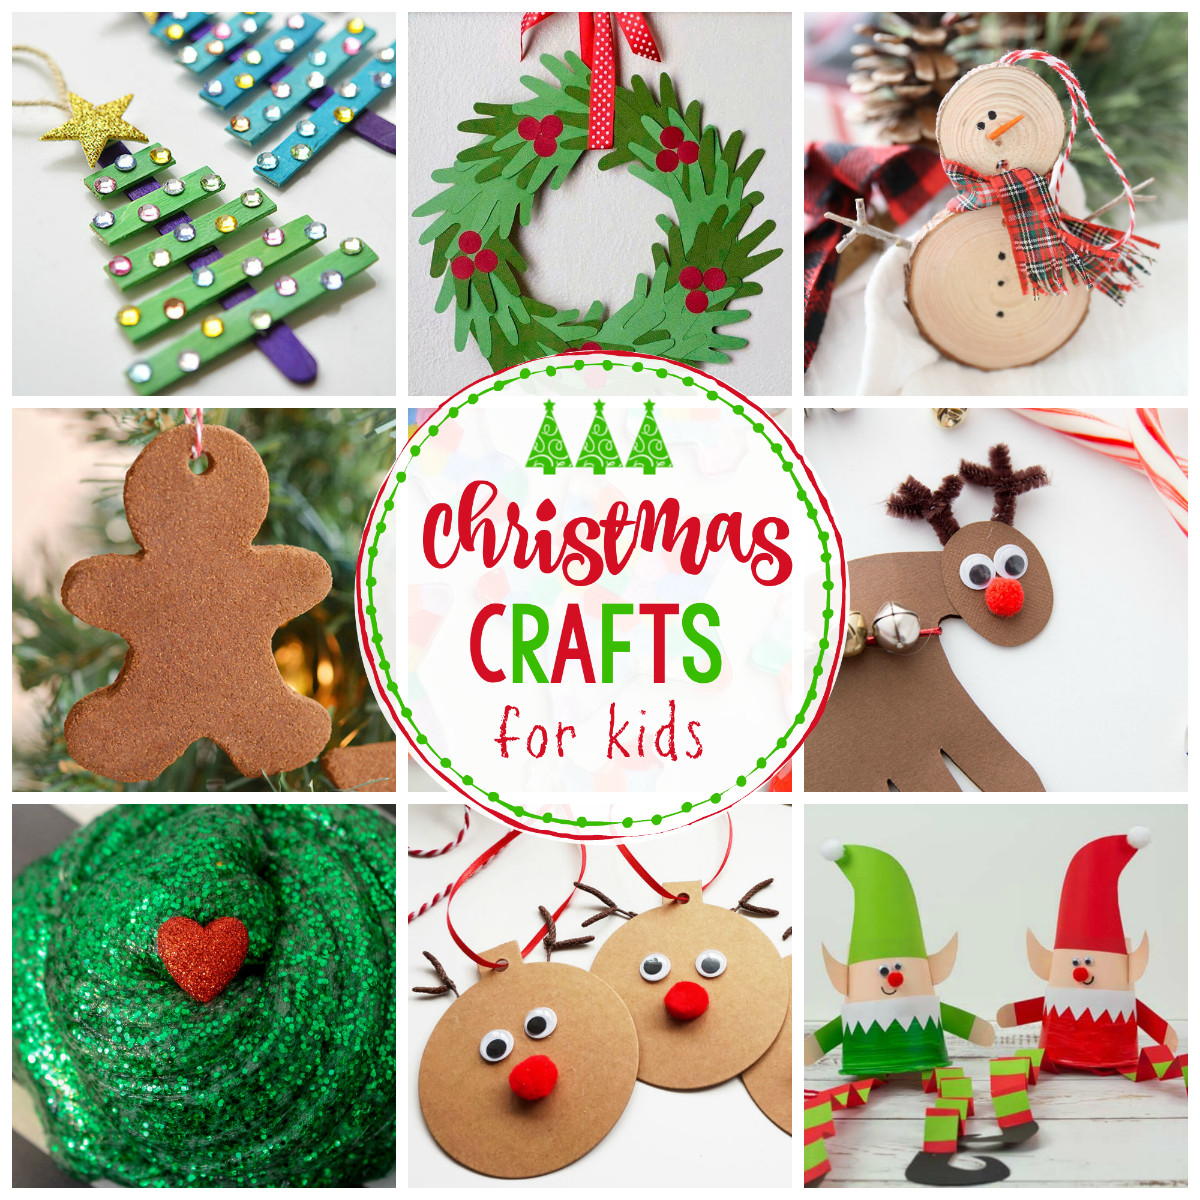 Best ideas about Crafts To Make For Christmas . Save or Pin 25 Easy Christmas Crafts for Kids Crazy Little Projects Now.